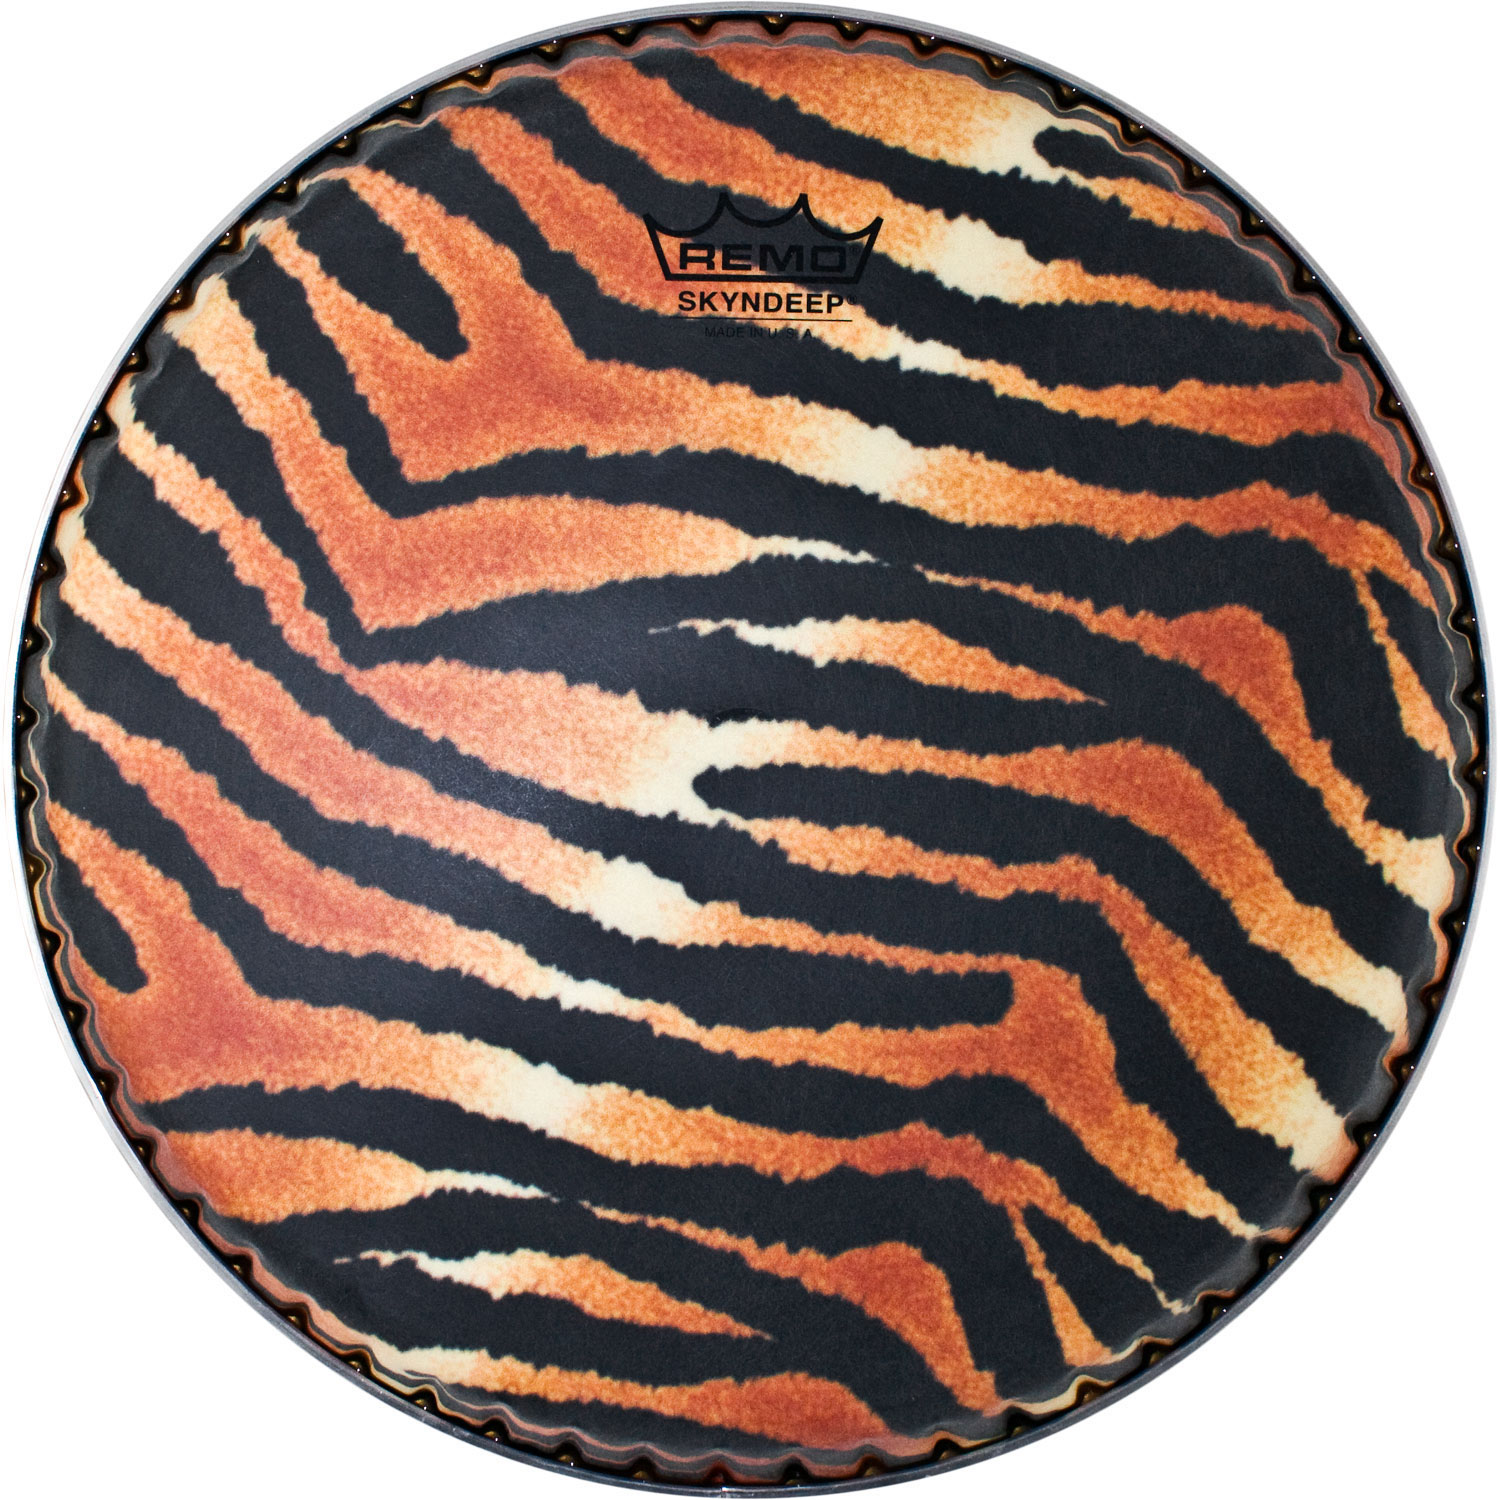 "Remo 12.5"" Symmetry Skyndeep Conga Drum Head (D1 Collar) with Tiger Stripe Graphic"